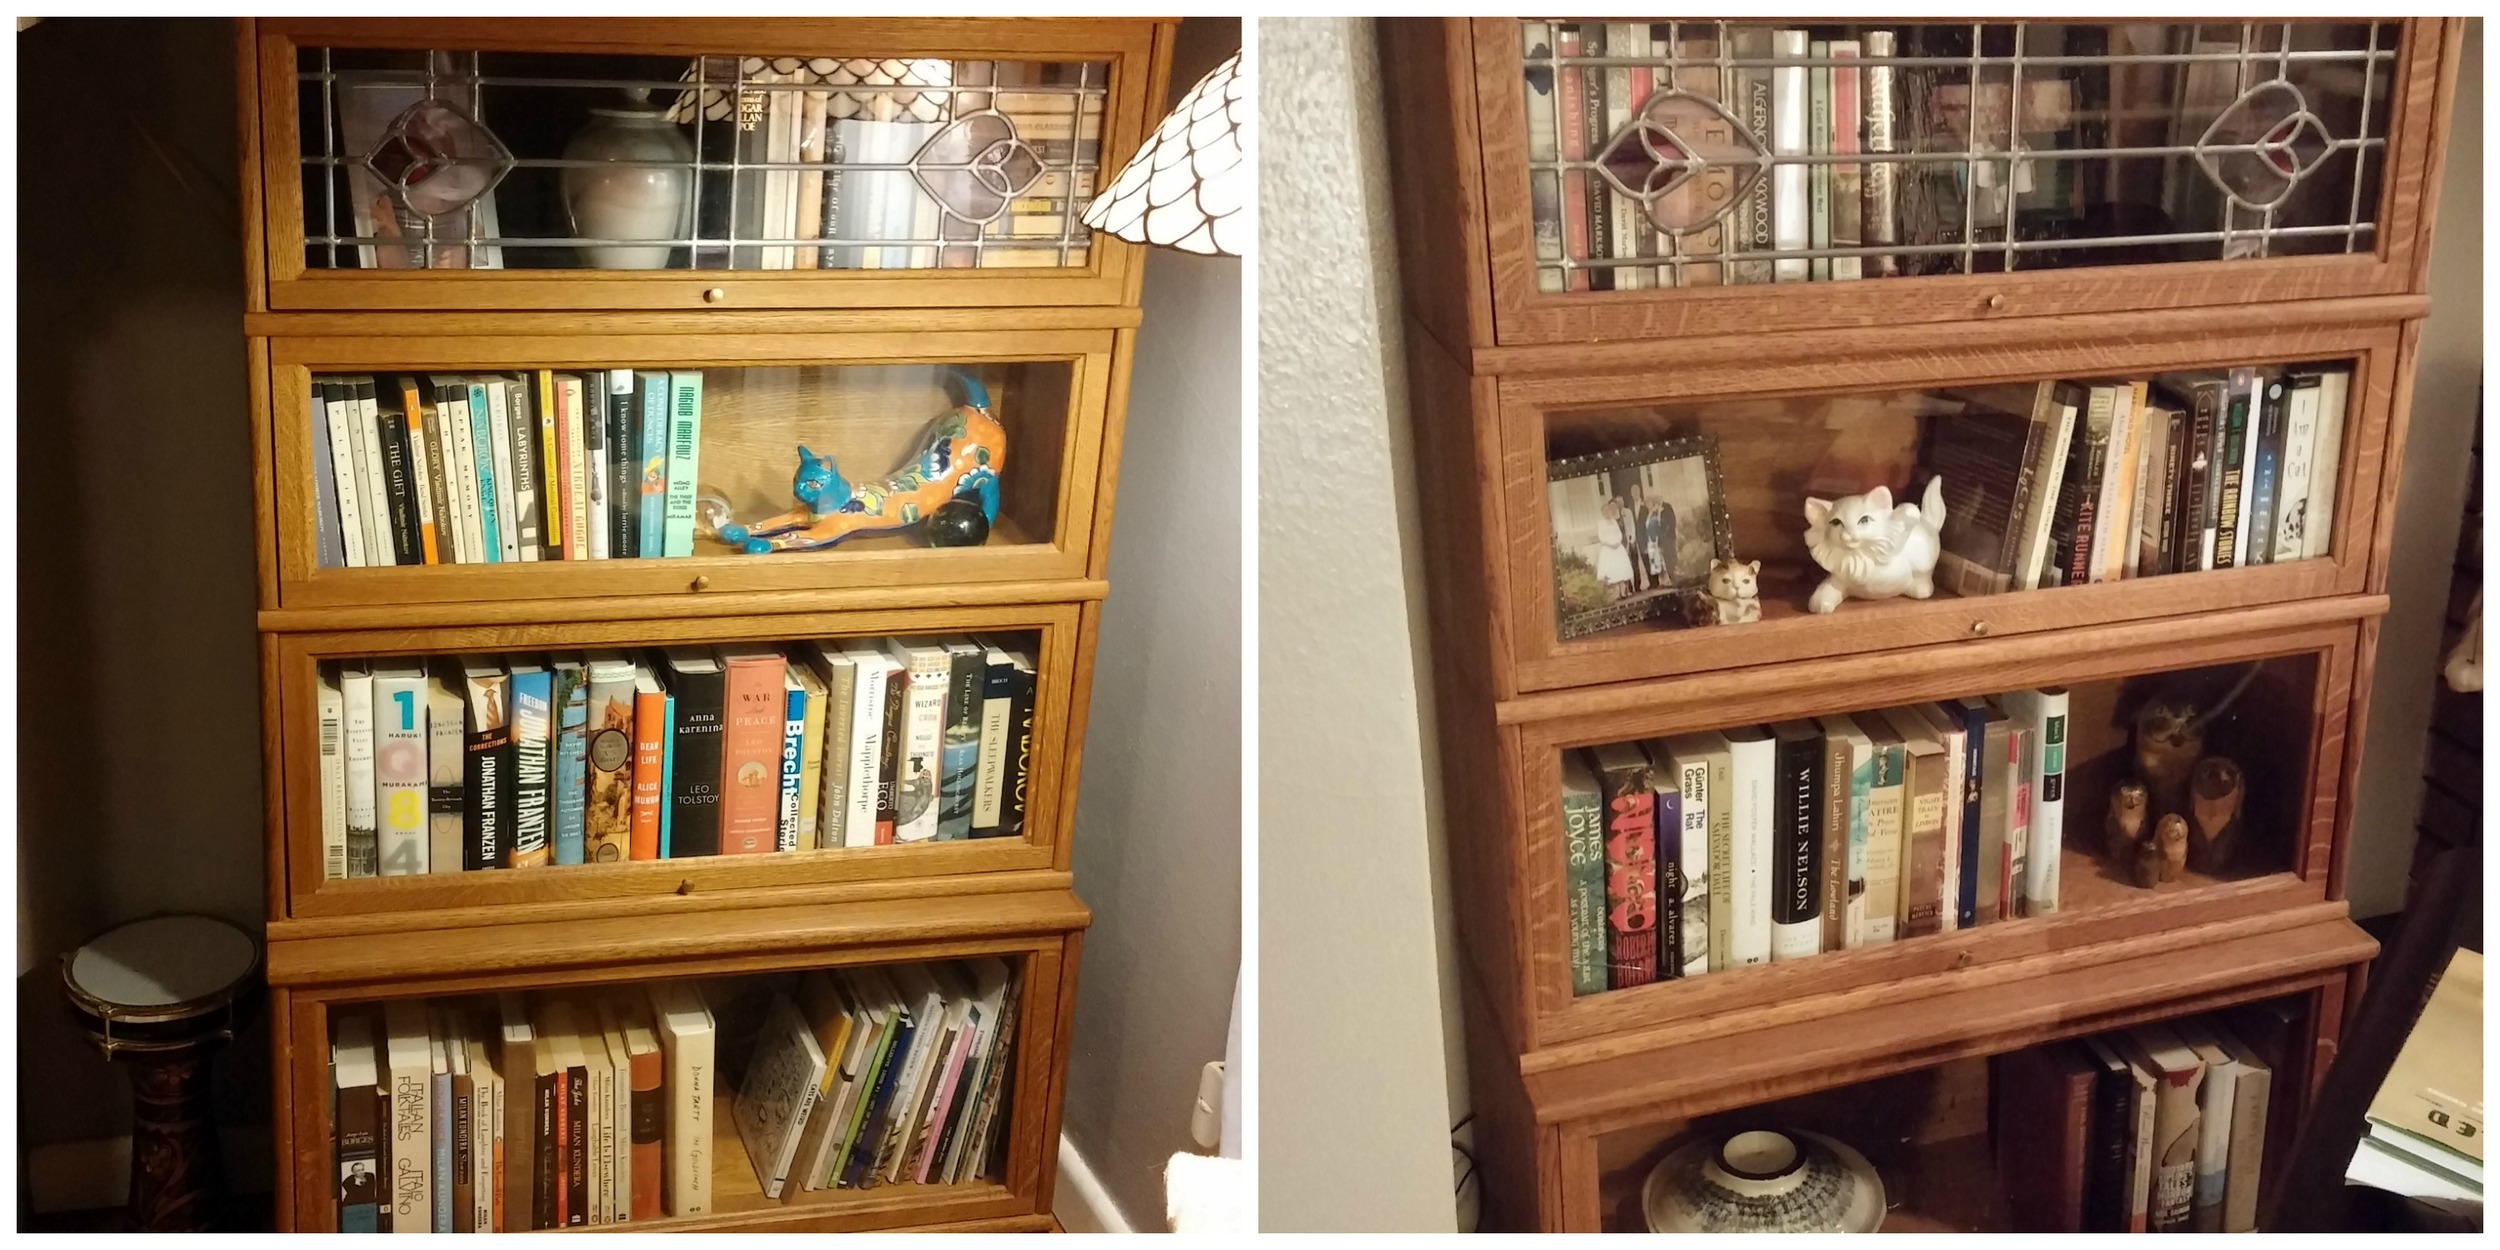 After photos of both shelves. I realize there are a lot of cat figurines in there. We absolutely need them.